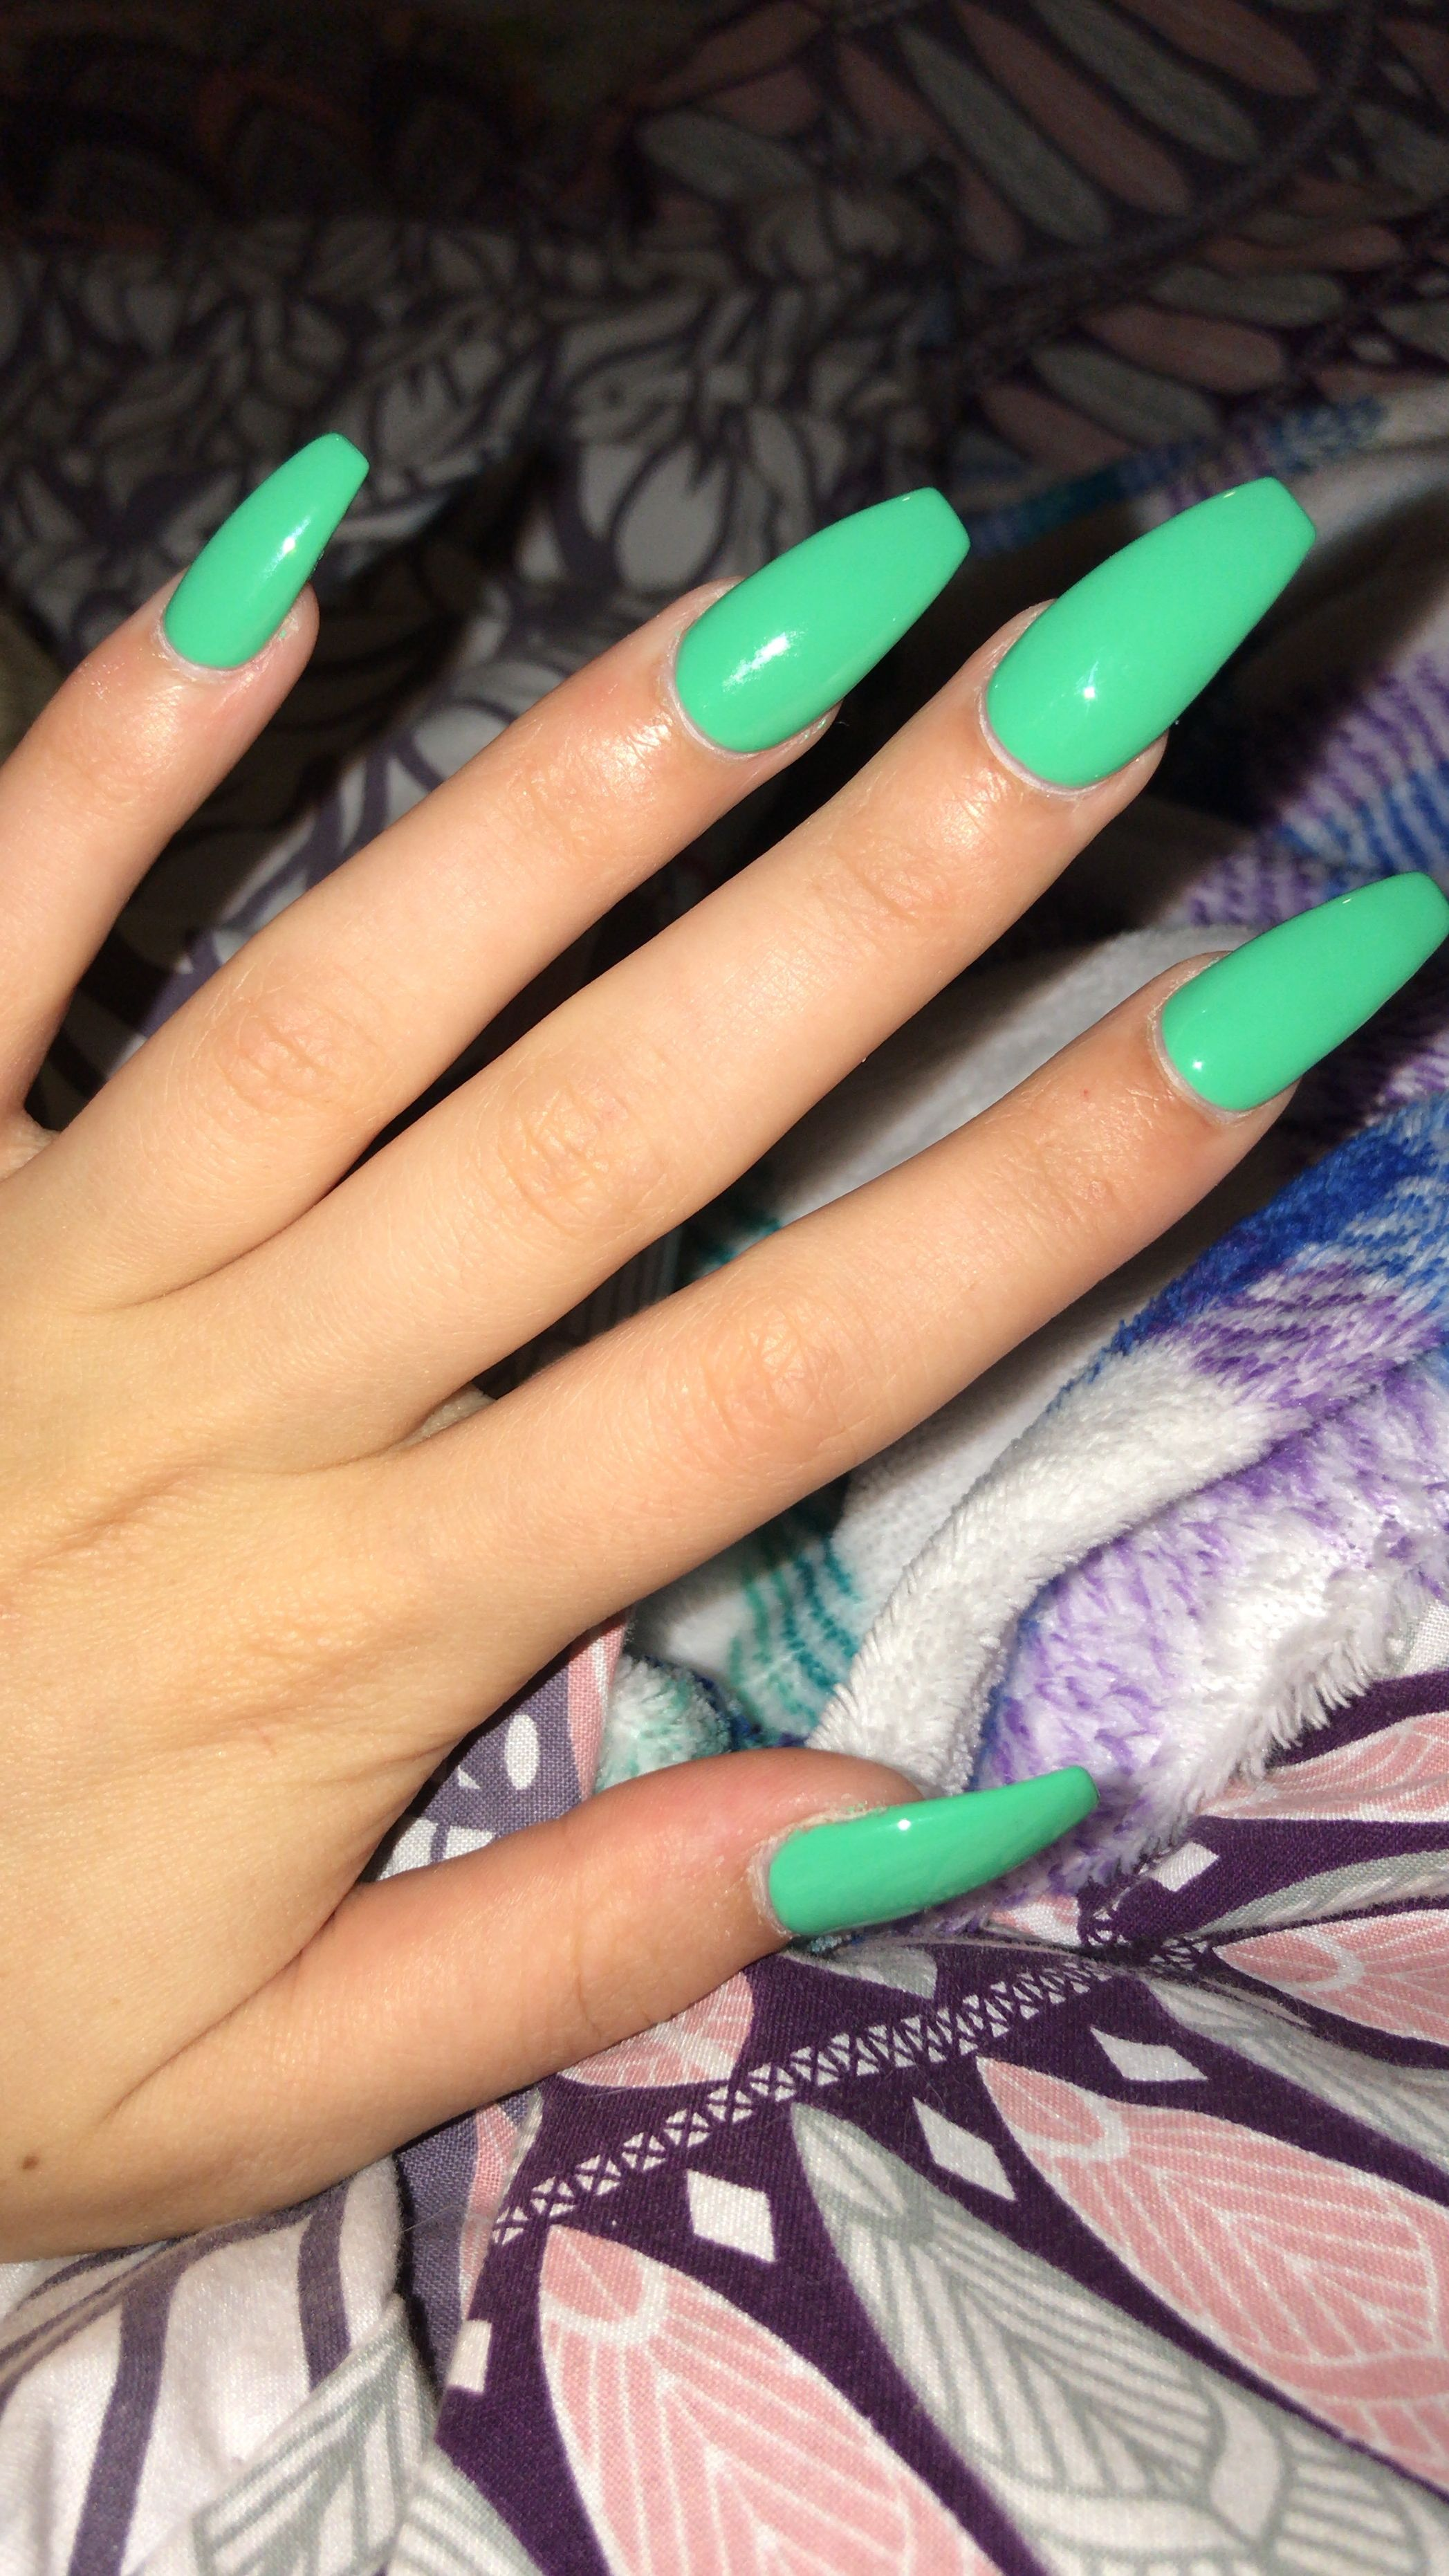 Green Mint Coffin Ballerina Long Acrylic Nails Green Acrylic Nails Mint Green Nails Acrylic Nails